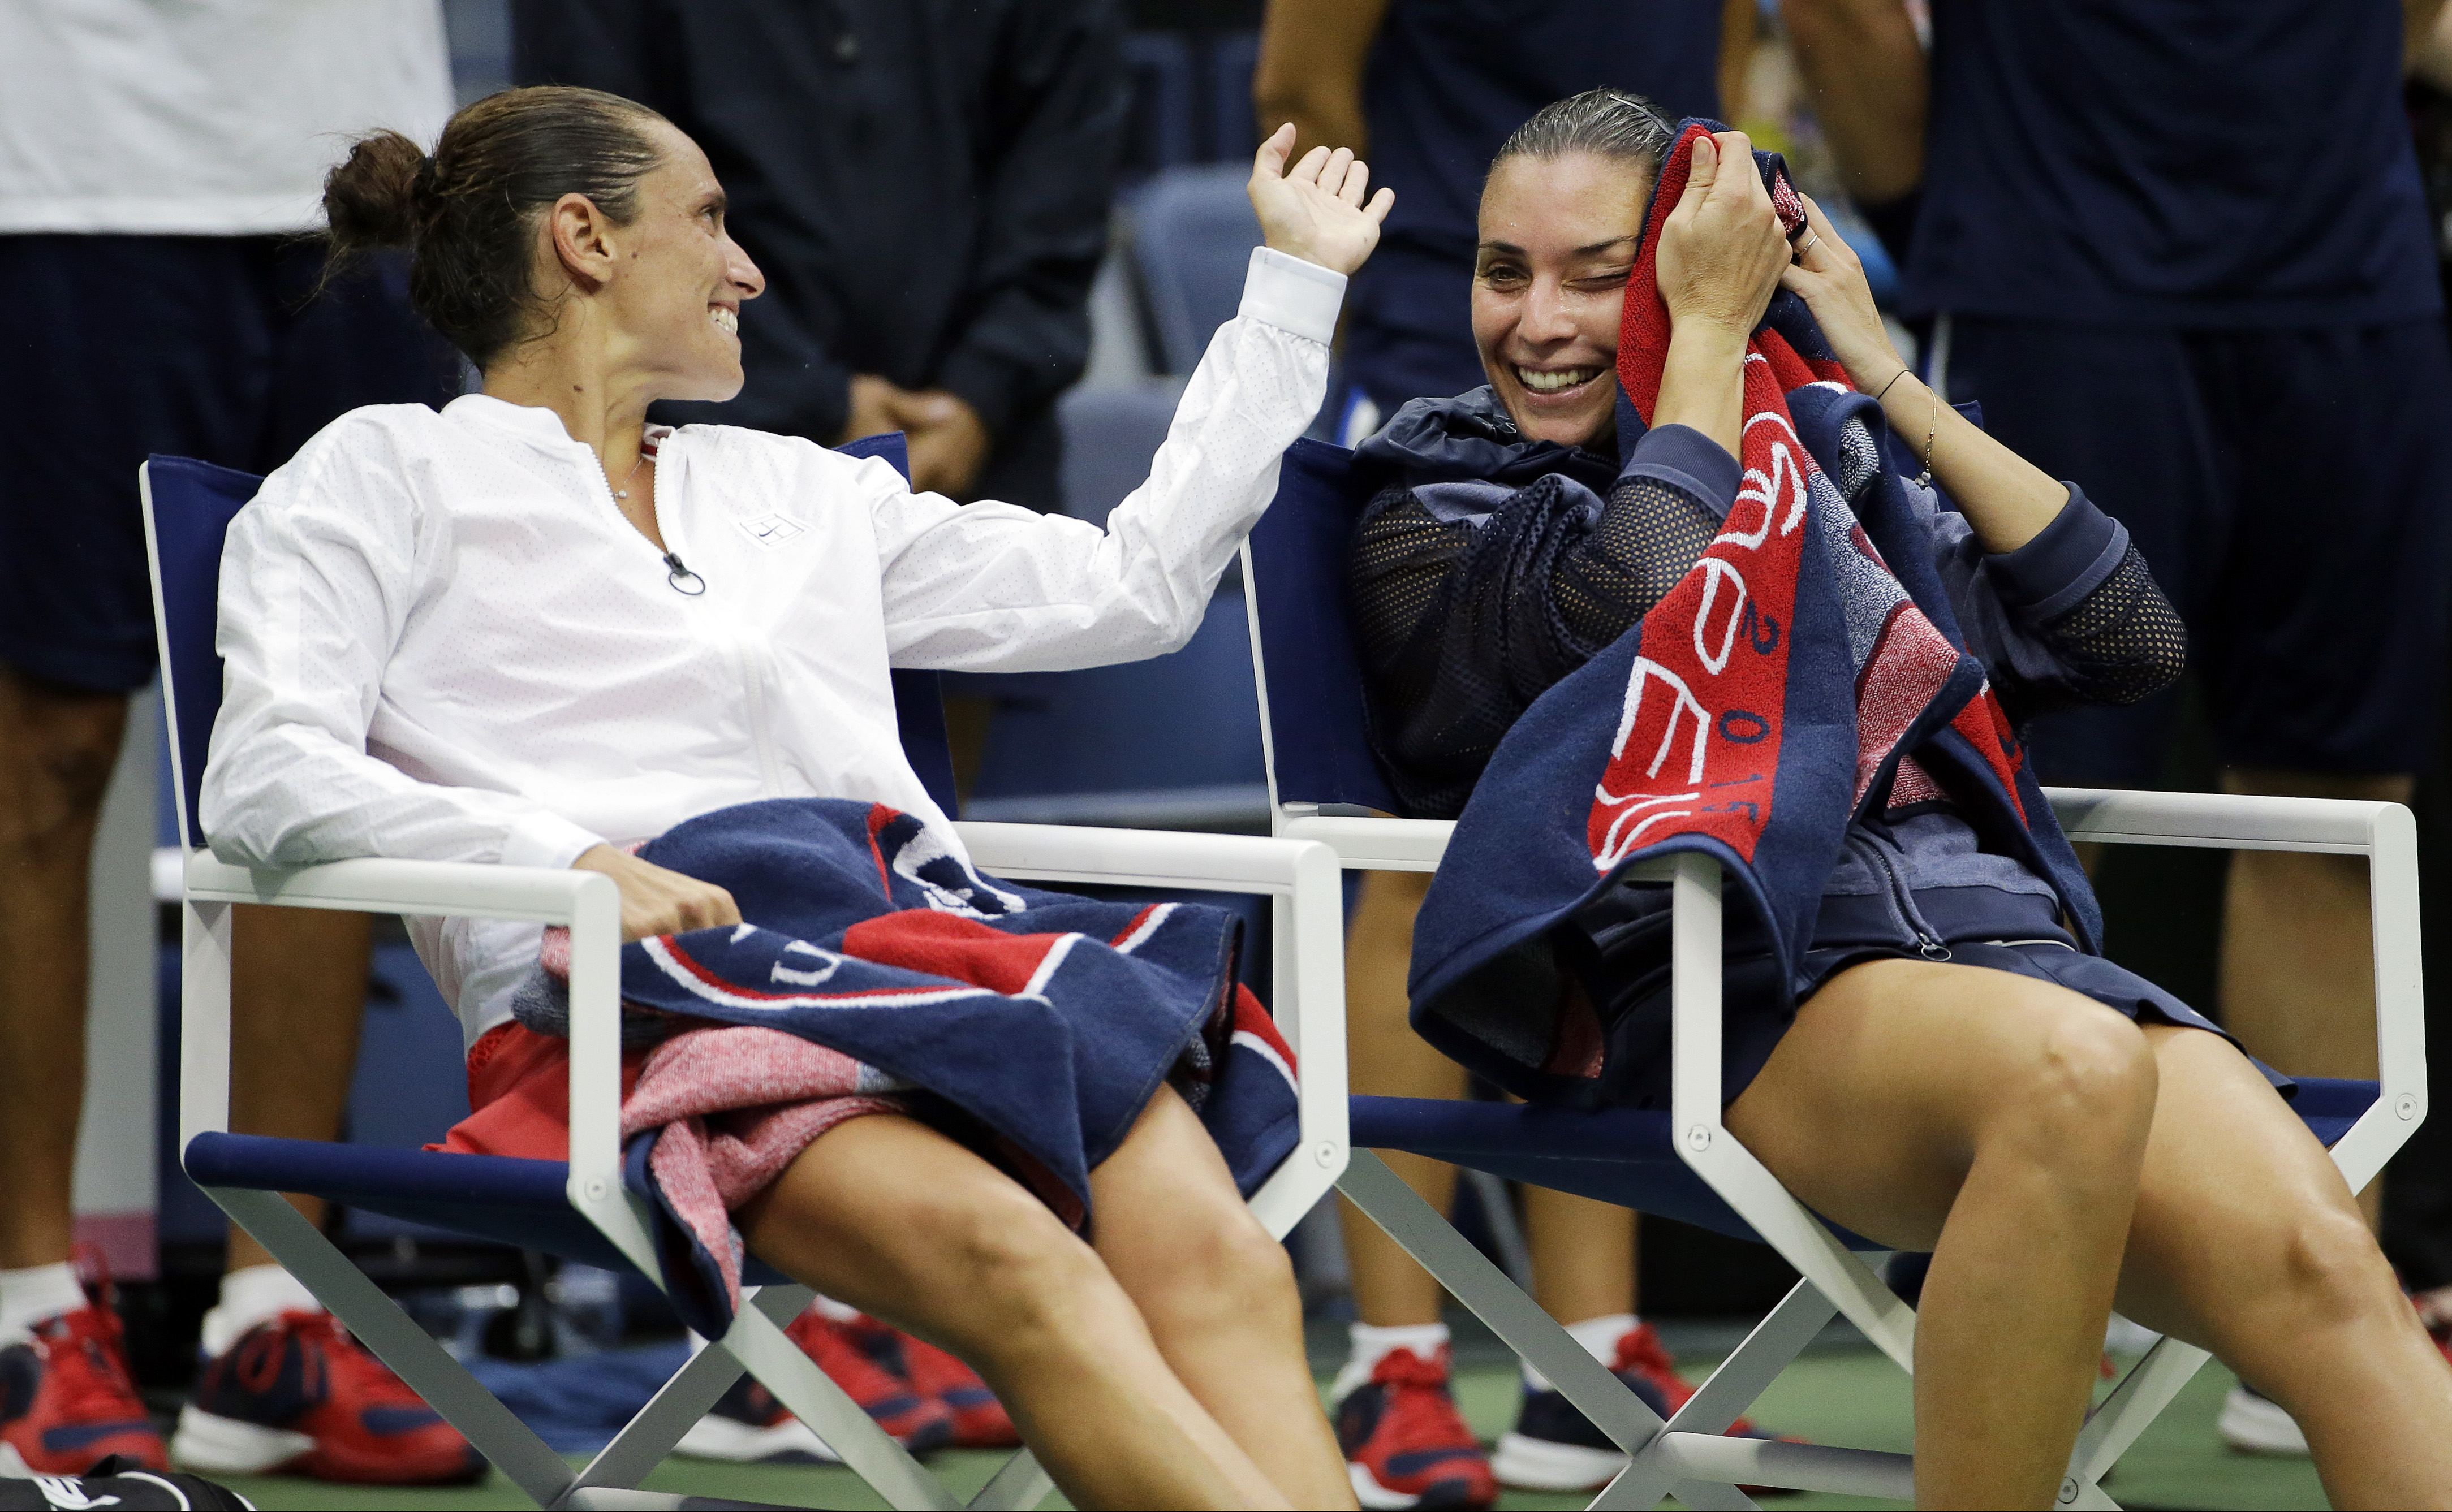 Roberta Vinci, of Italy, left, talks with Flavia Pennetta, of Italy, after Pennetta beat Vinci in the women's championship match of the U.S. Open tennis tournament, Saturday, Sept. 12, 2015, in New York. (AP Photo/David Goldman)